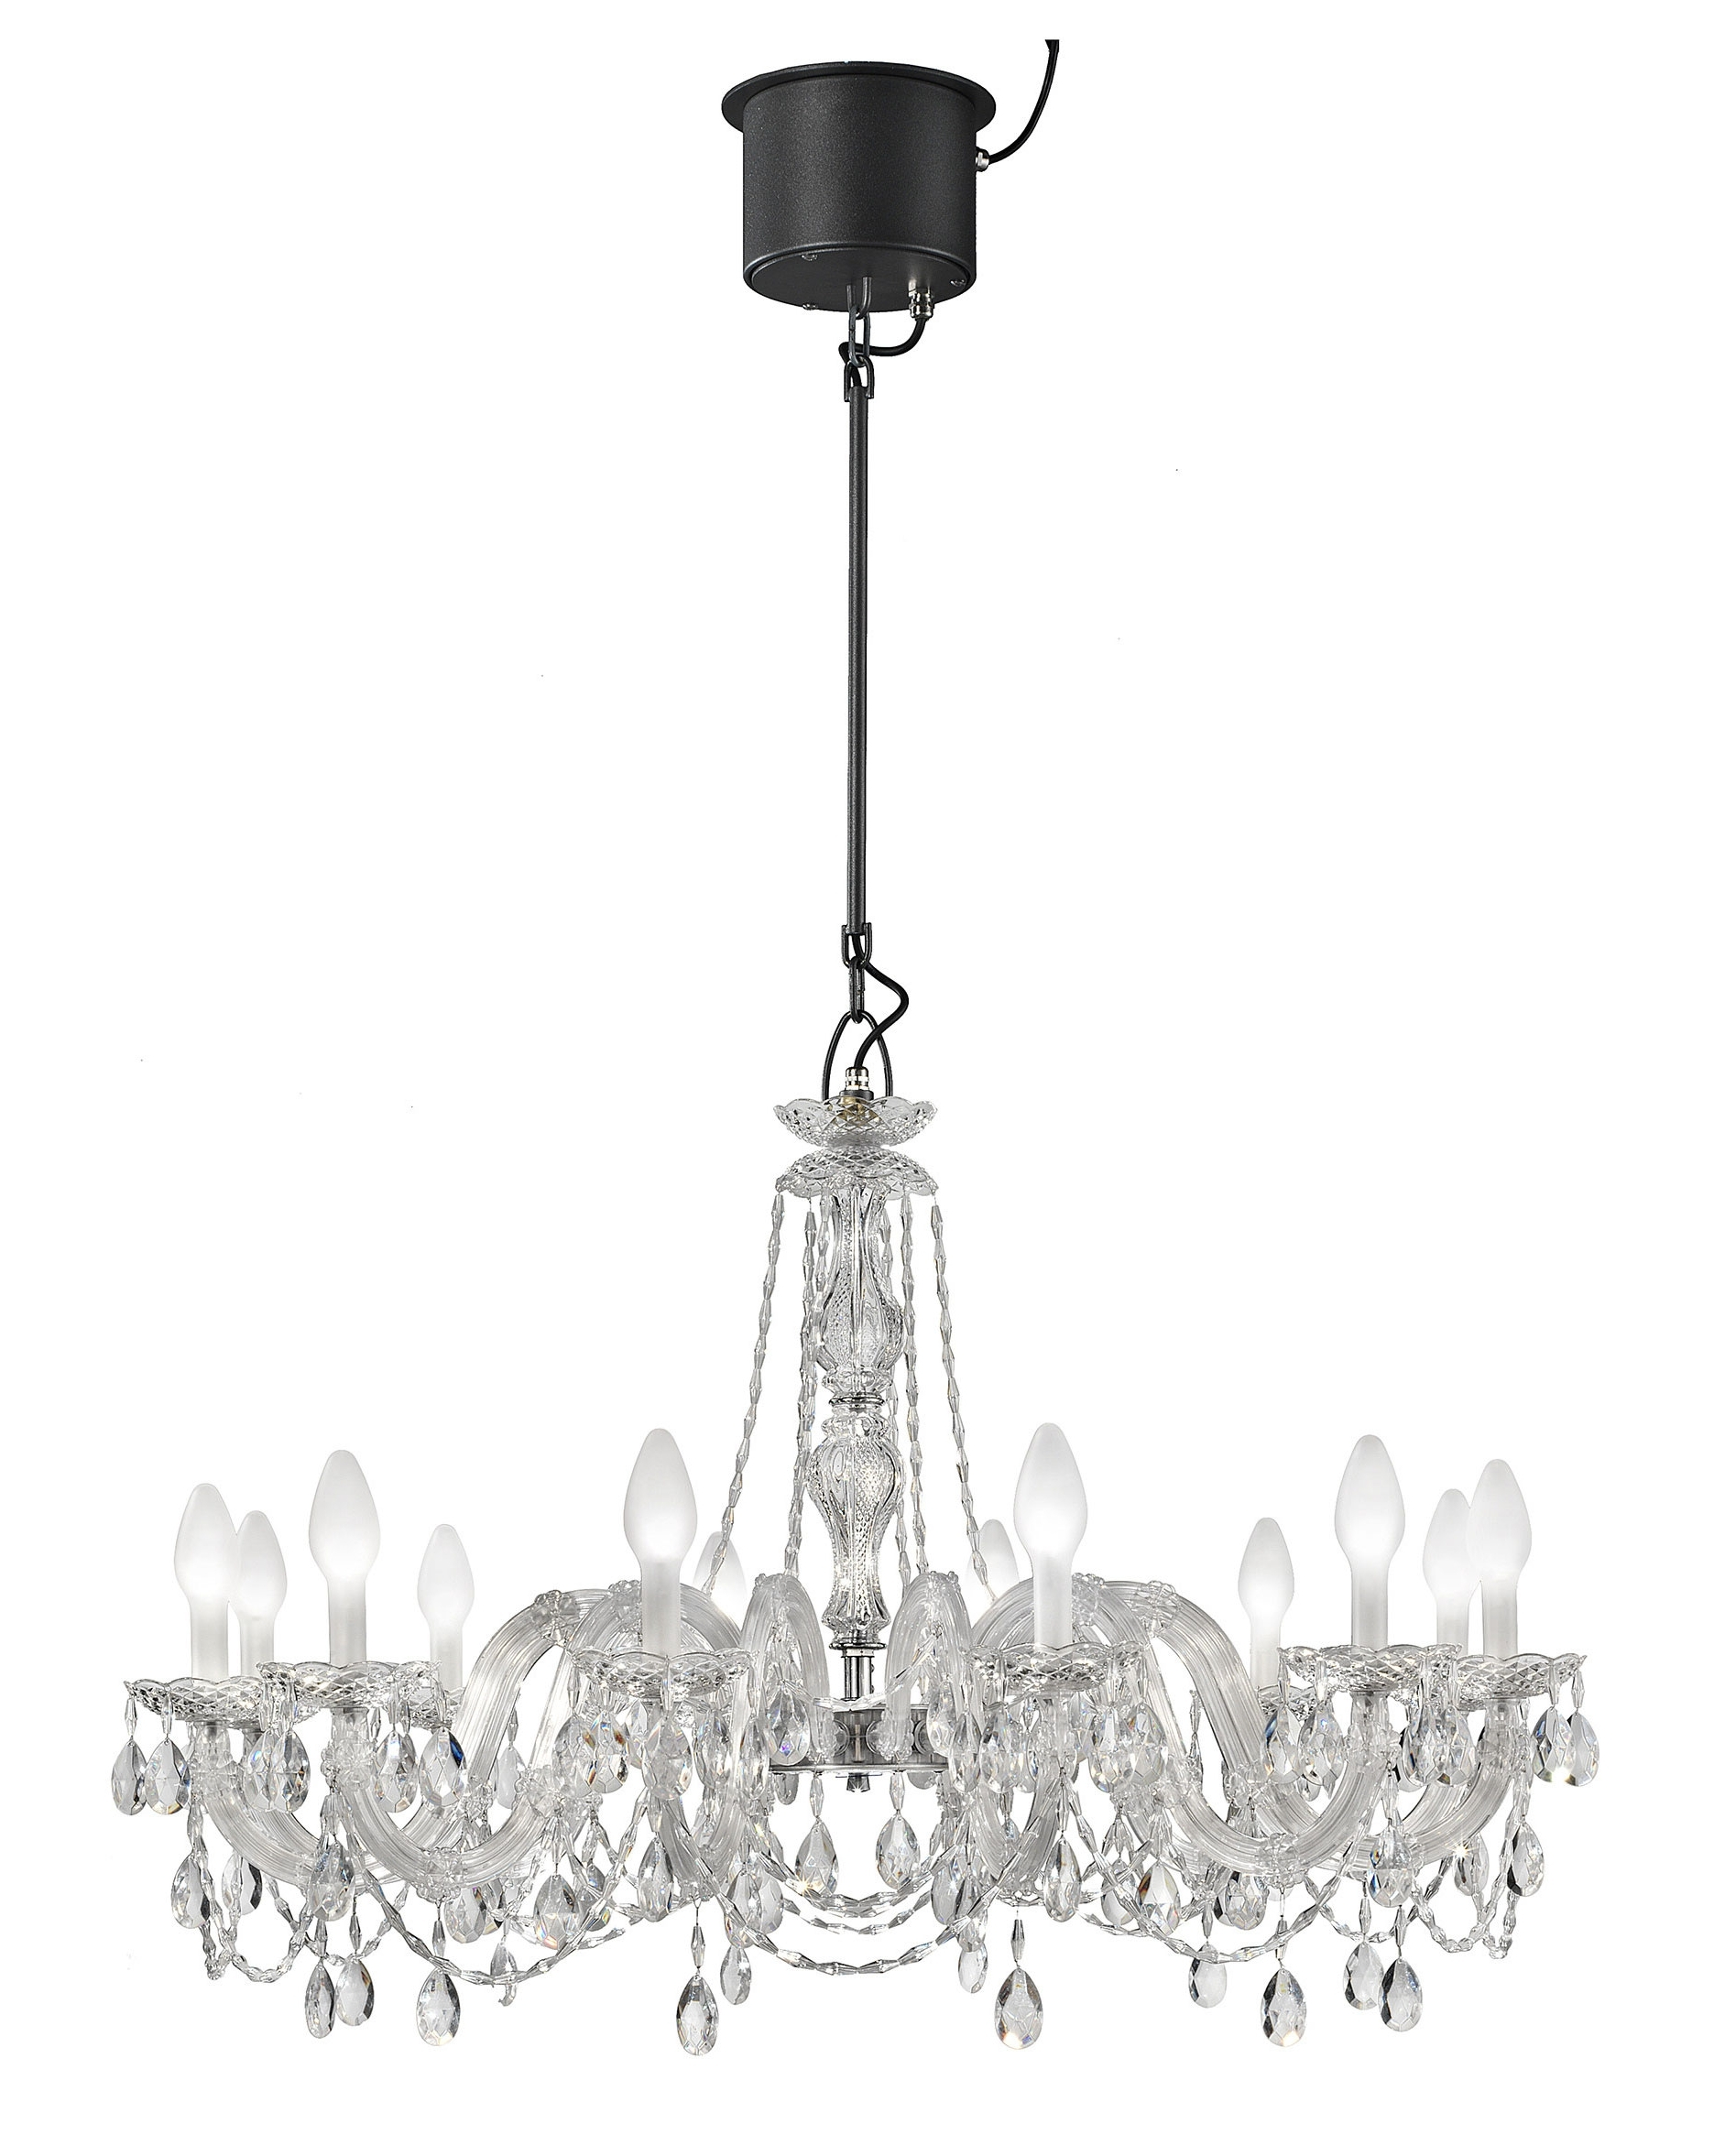 Most Recent Light Fitting Chandeliers Within Modern Light Fixtures & Luxury Lighting (View 14 of 20)